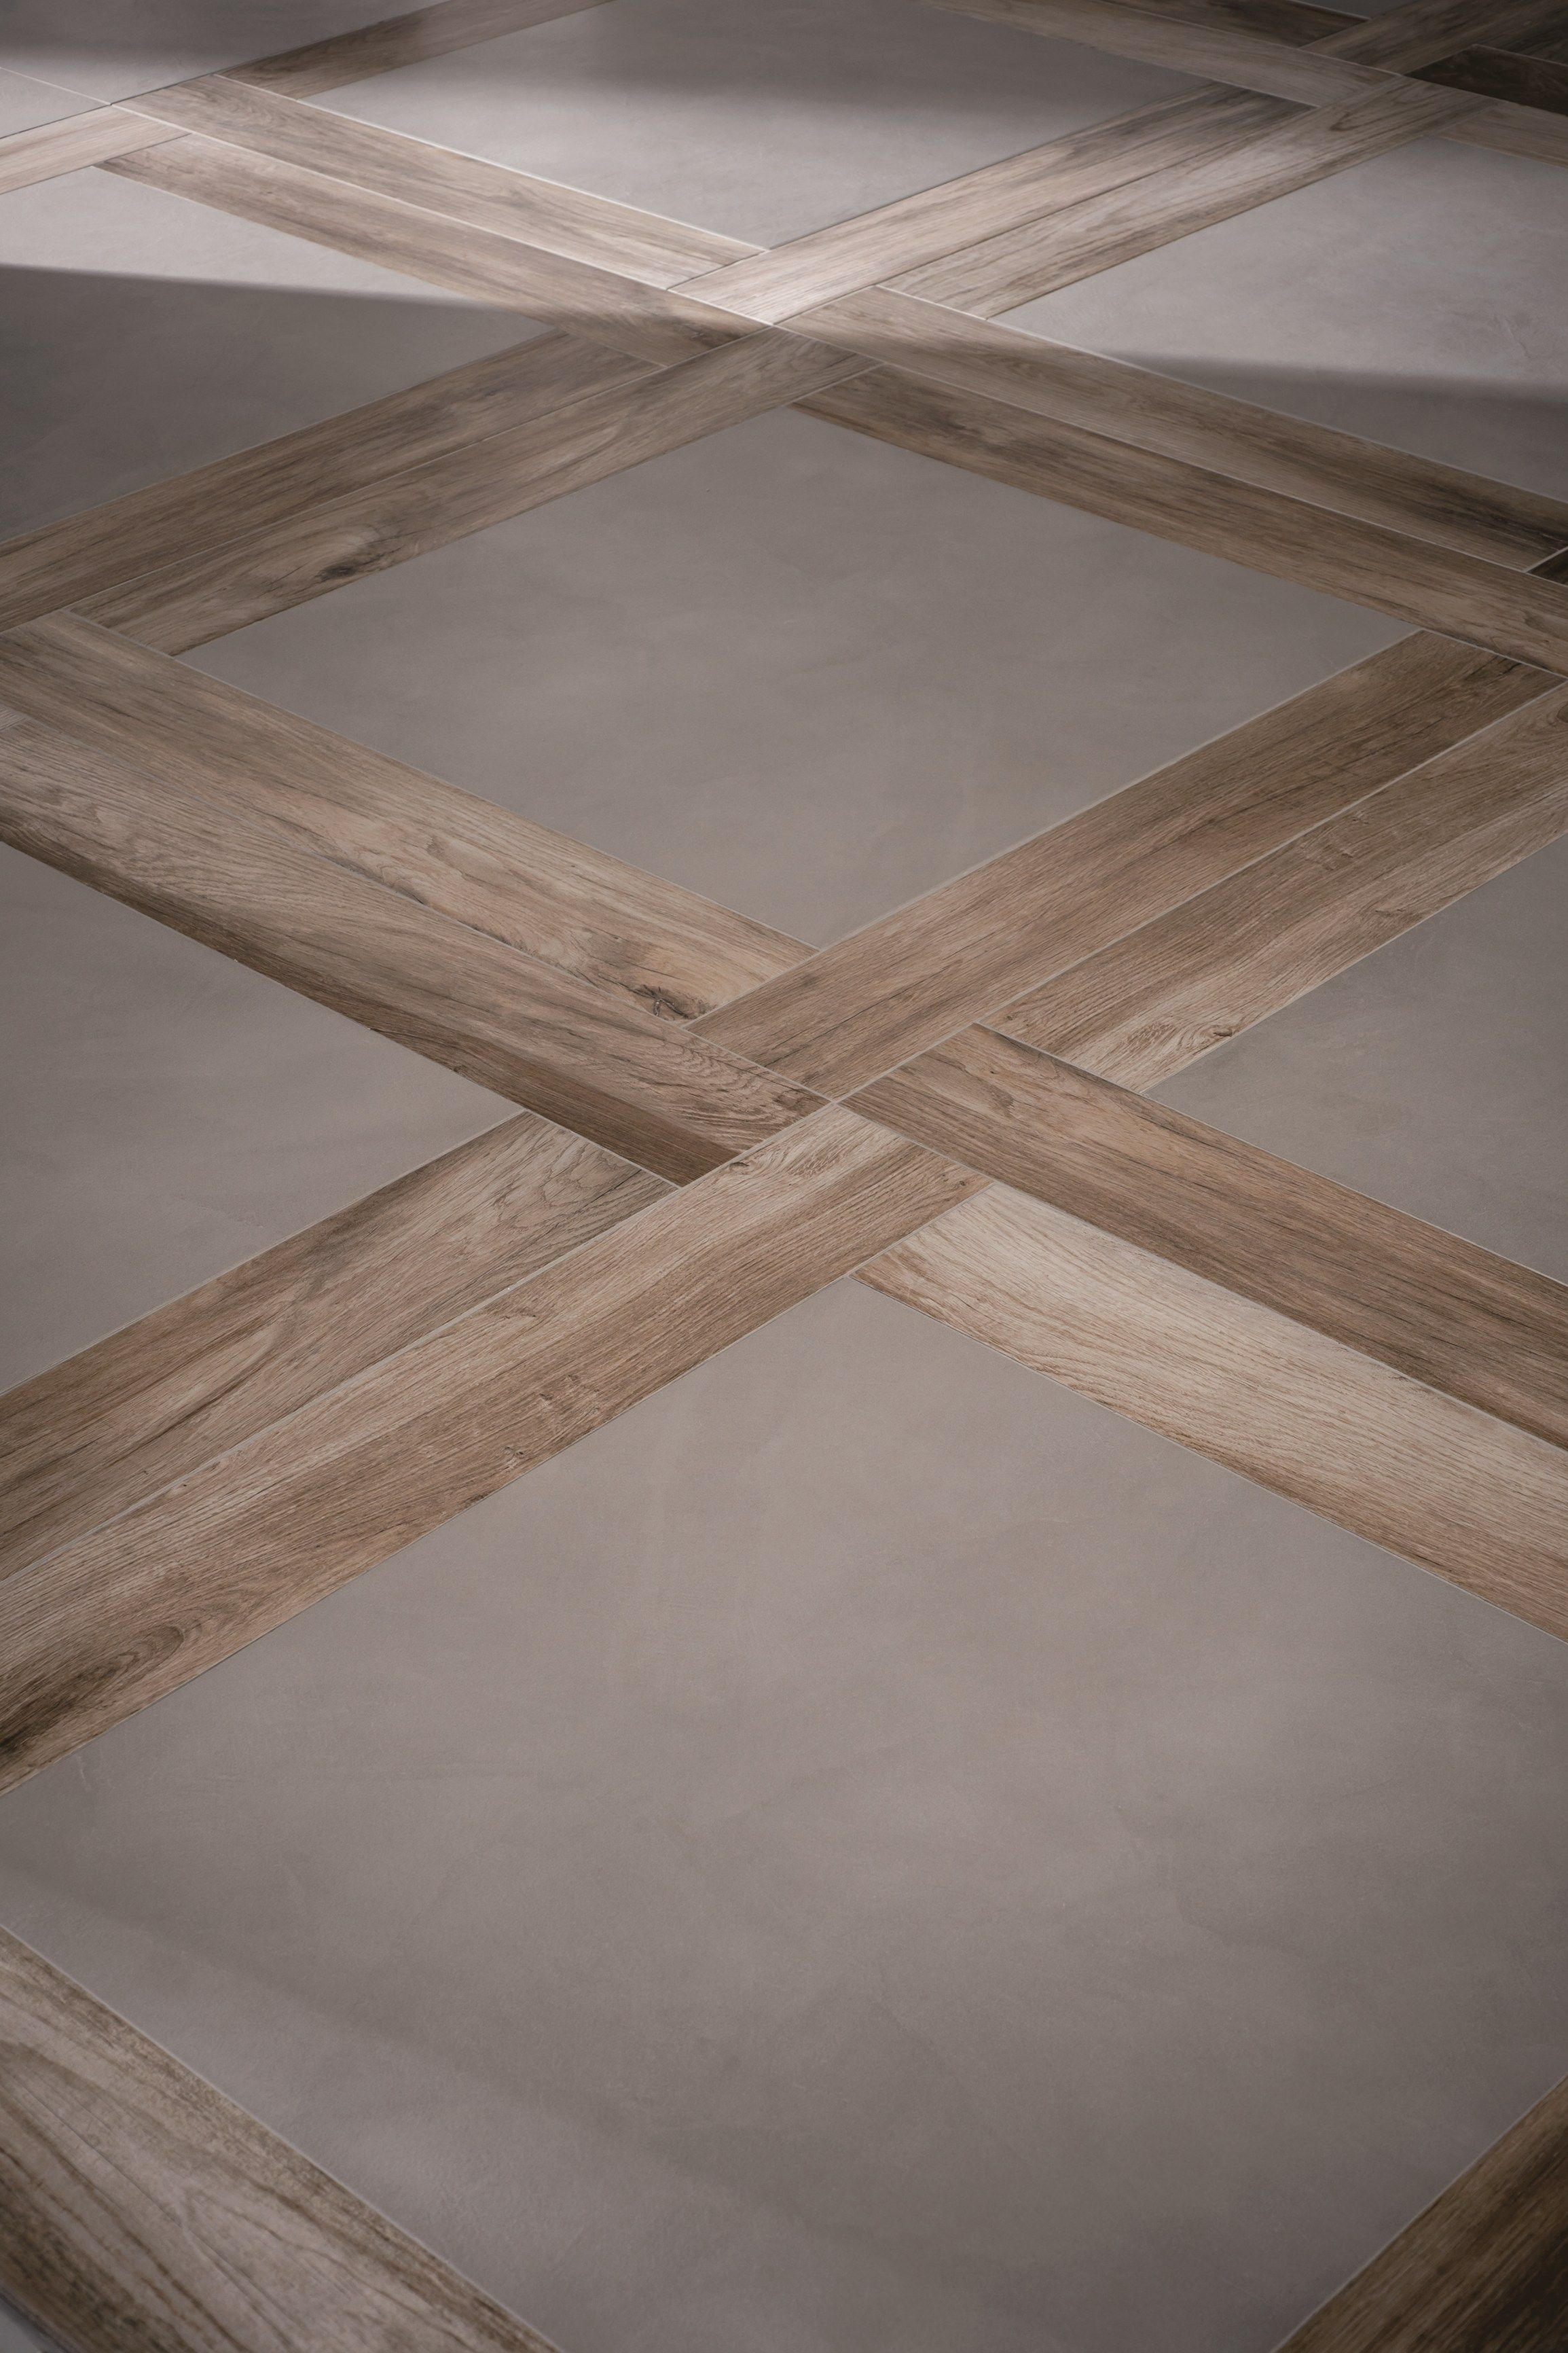 Porcelain stoneware wallfloor tiles block by marazzi porcelain stoneware wallfloor tiles block by marazzi dailygadgetfo Image collections